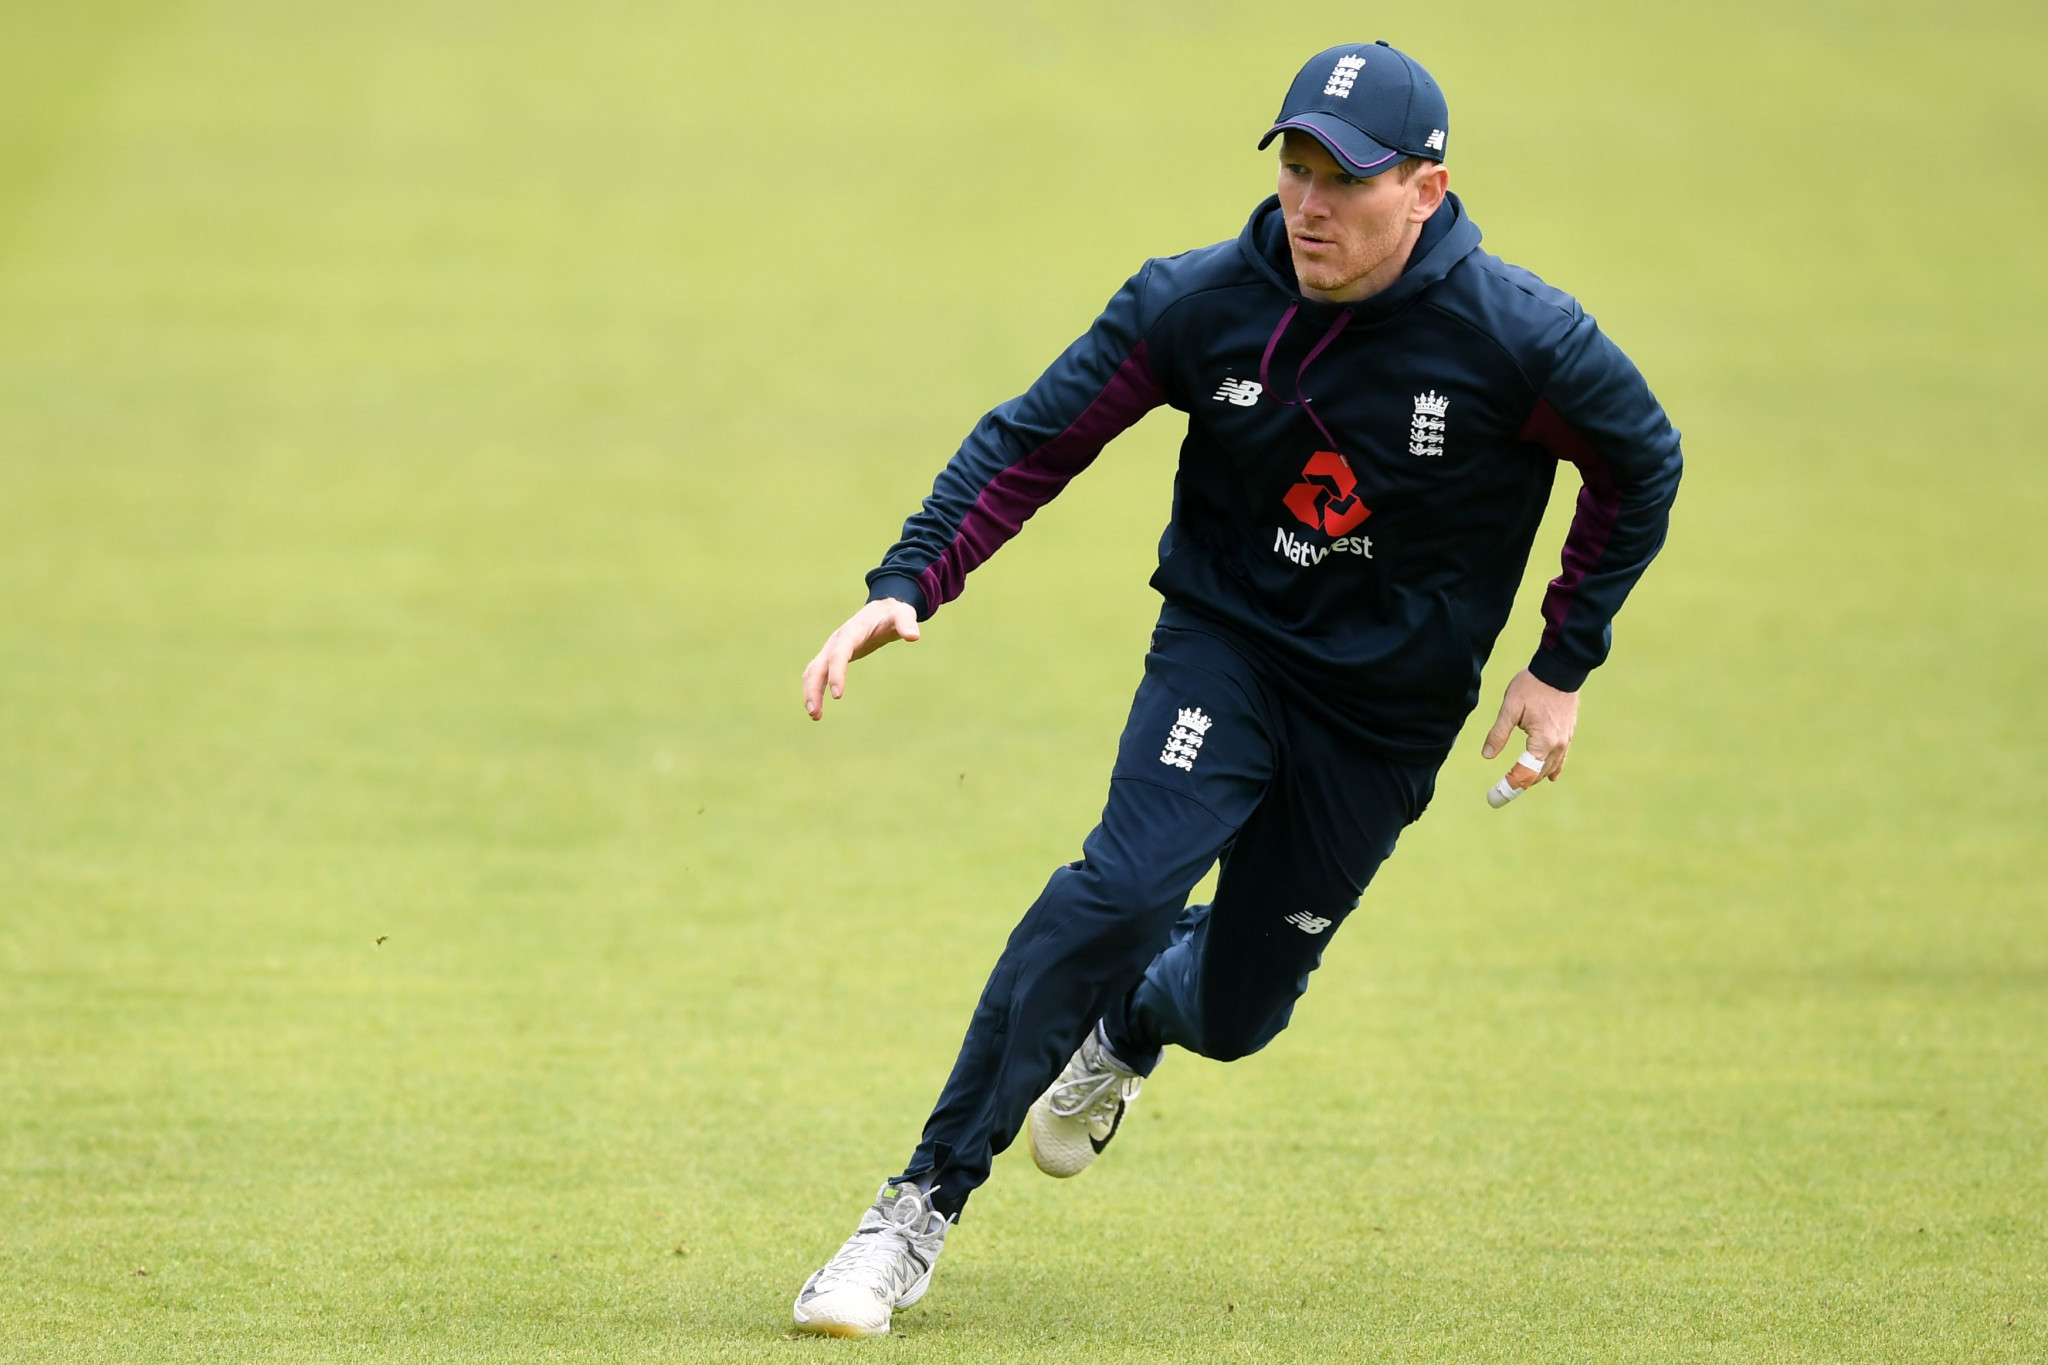 England relishing favourites tag as ICC Cricket World Cup hosts aim for first title